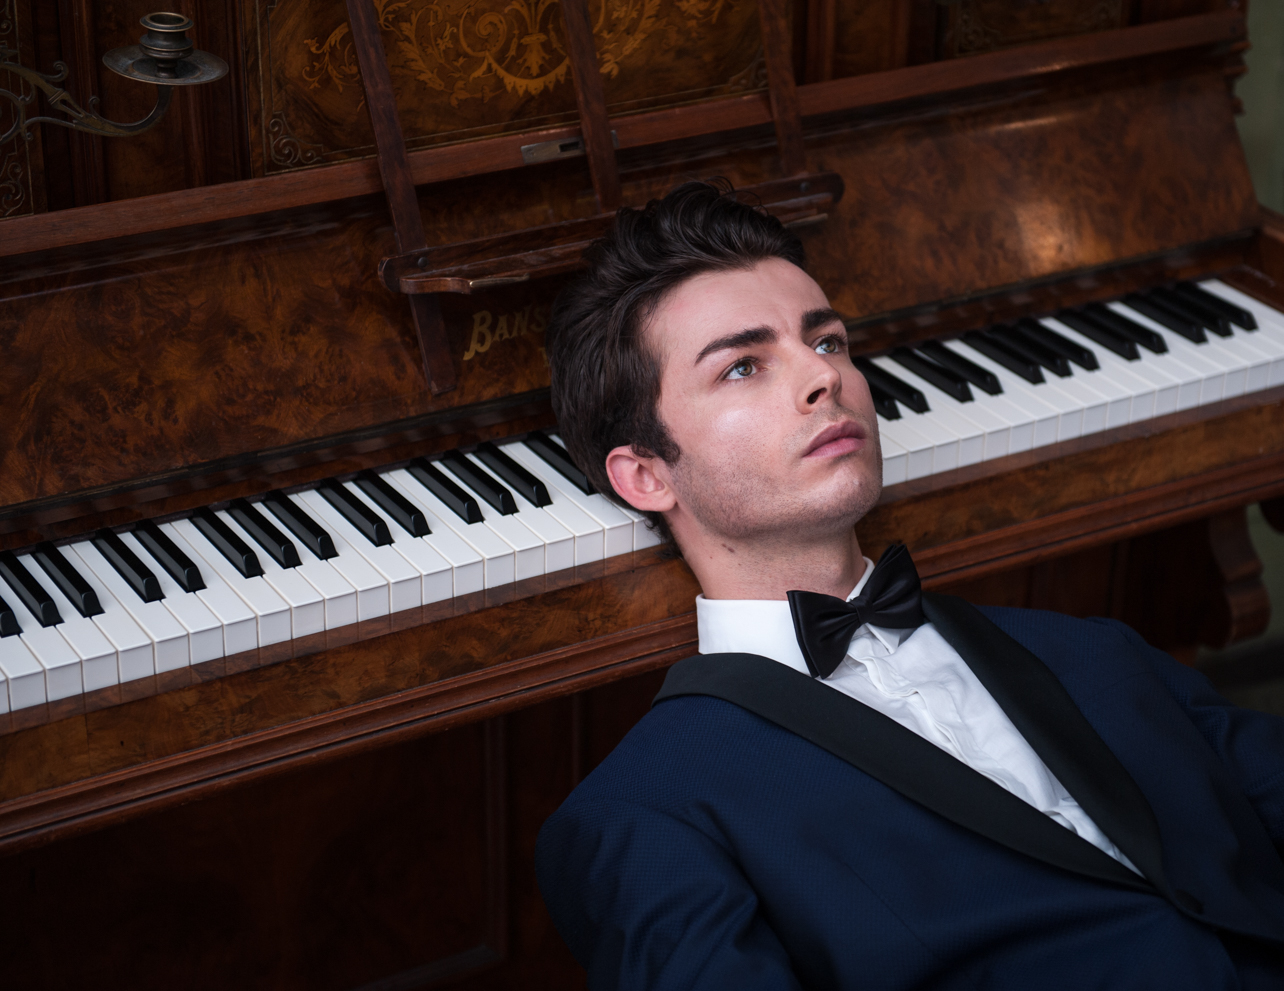 The piano man. Fine art photography by Farnham, Surrey based portrait and fashion photographer James Muller